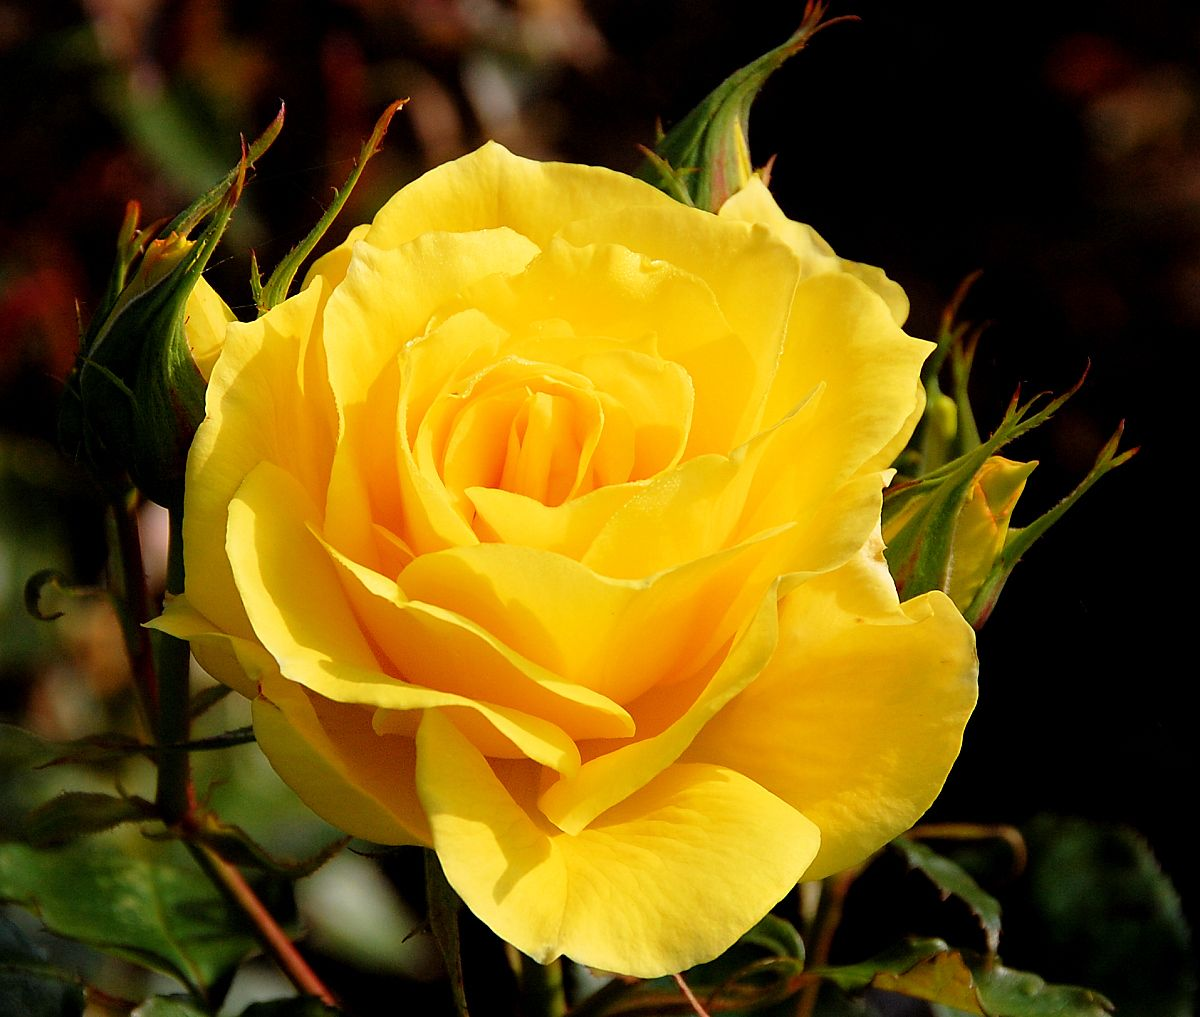 Yellow rose yellow rose meaning yellow roses - The Yellow Rose My Grandma S Favourite Flower It Means Friendship And Joy And